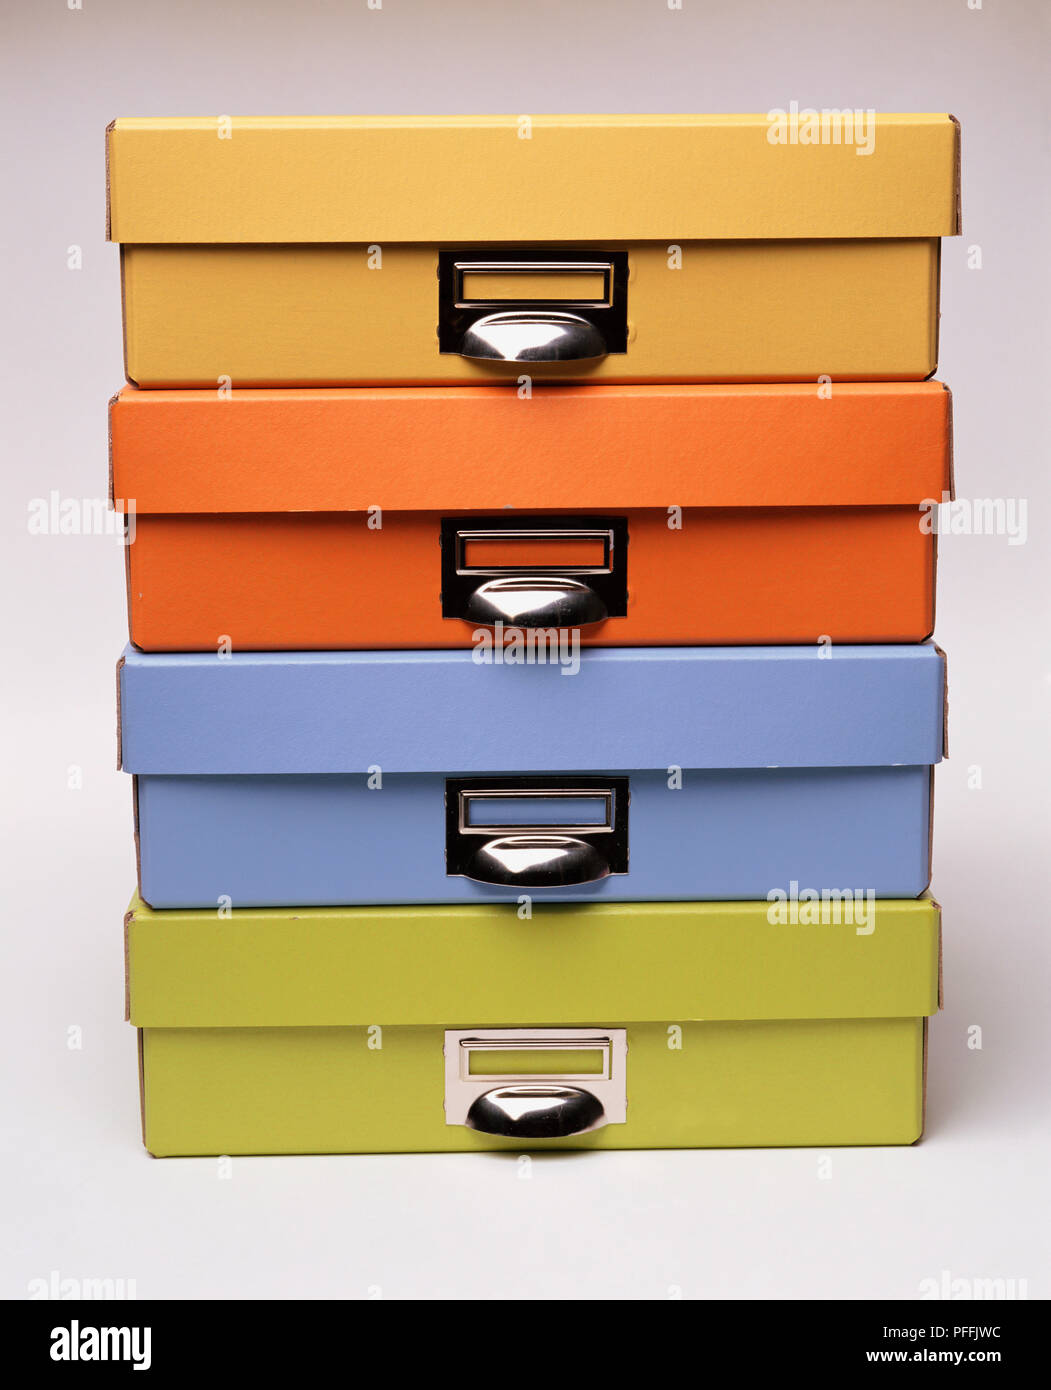 Stacked Coloured Storage Boxes; Yellow, Orange, Blue And ...